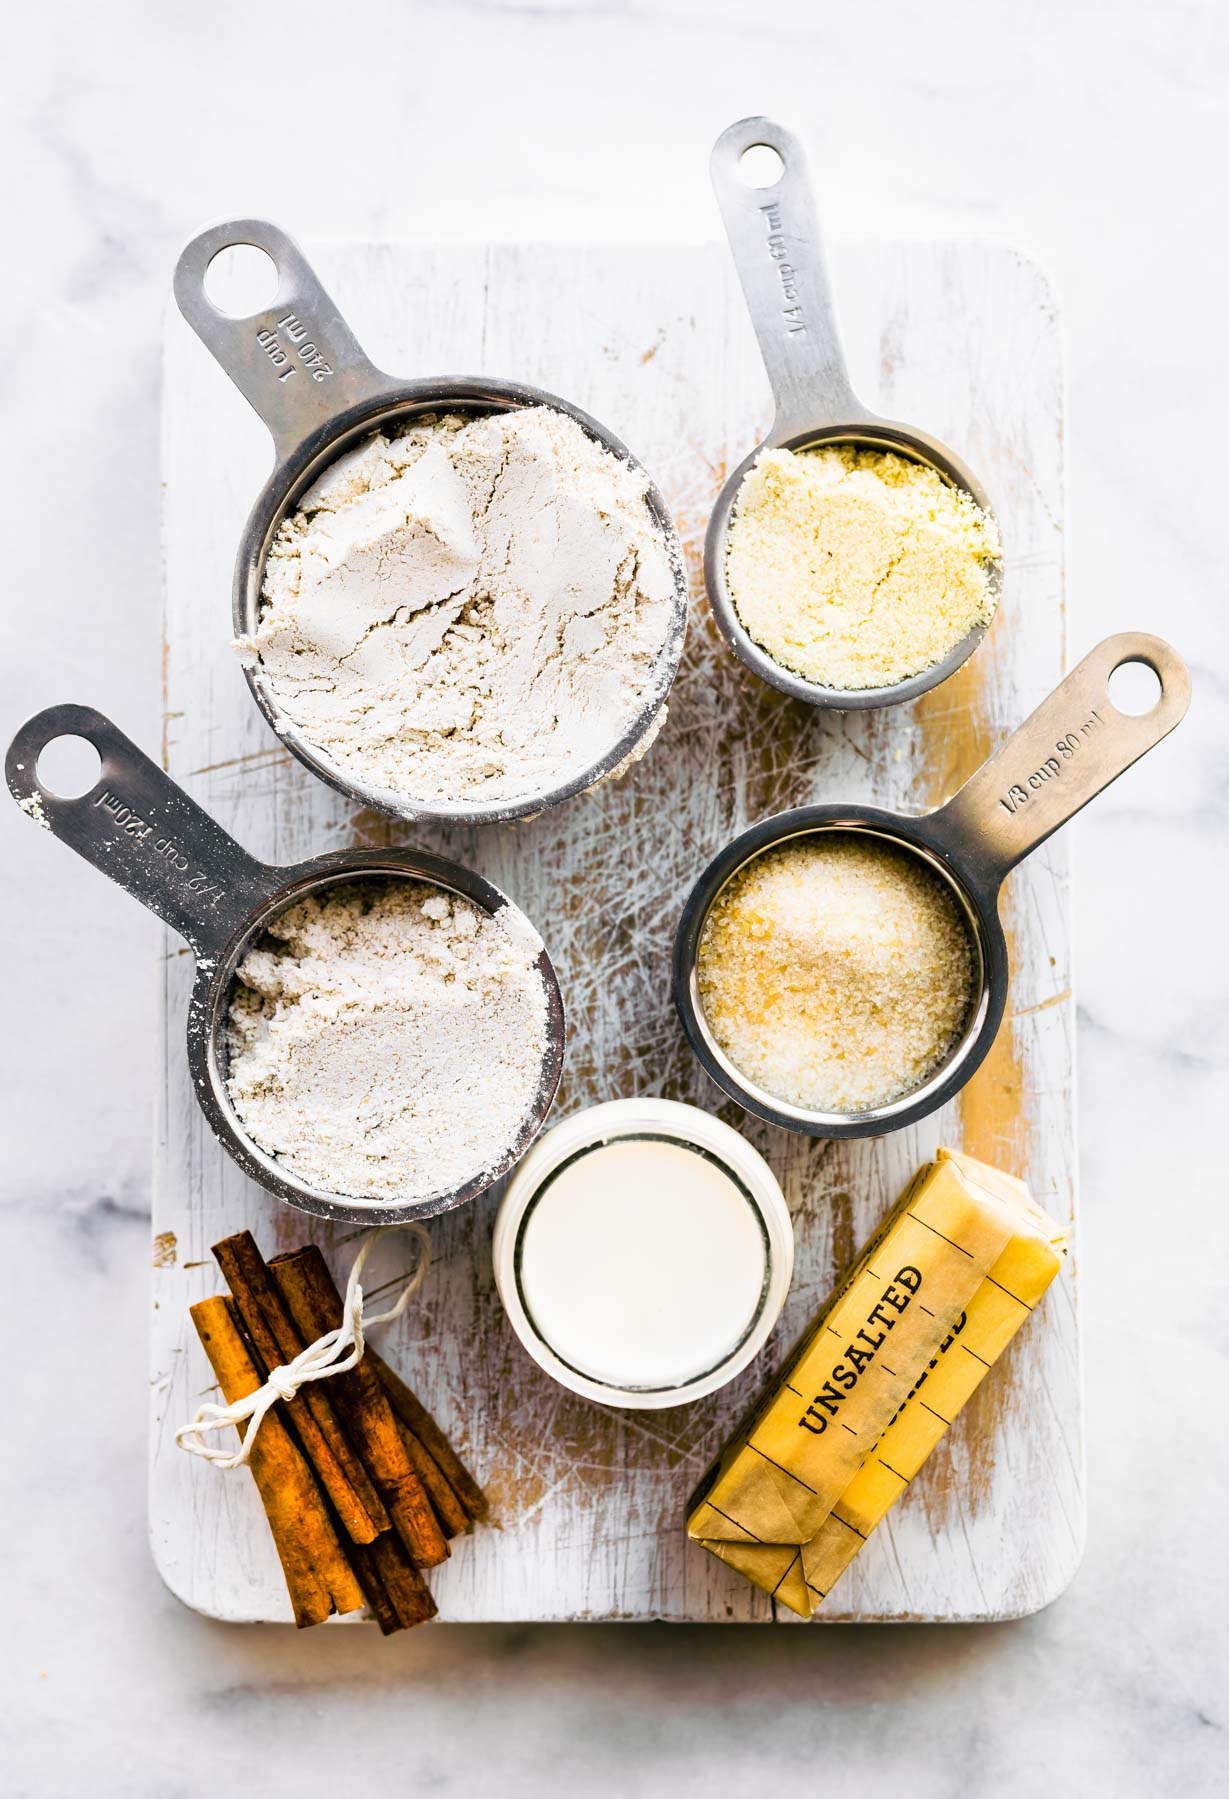 overhead photo: ingredients in measuring cups to make gluten free snickerdoodles